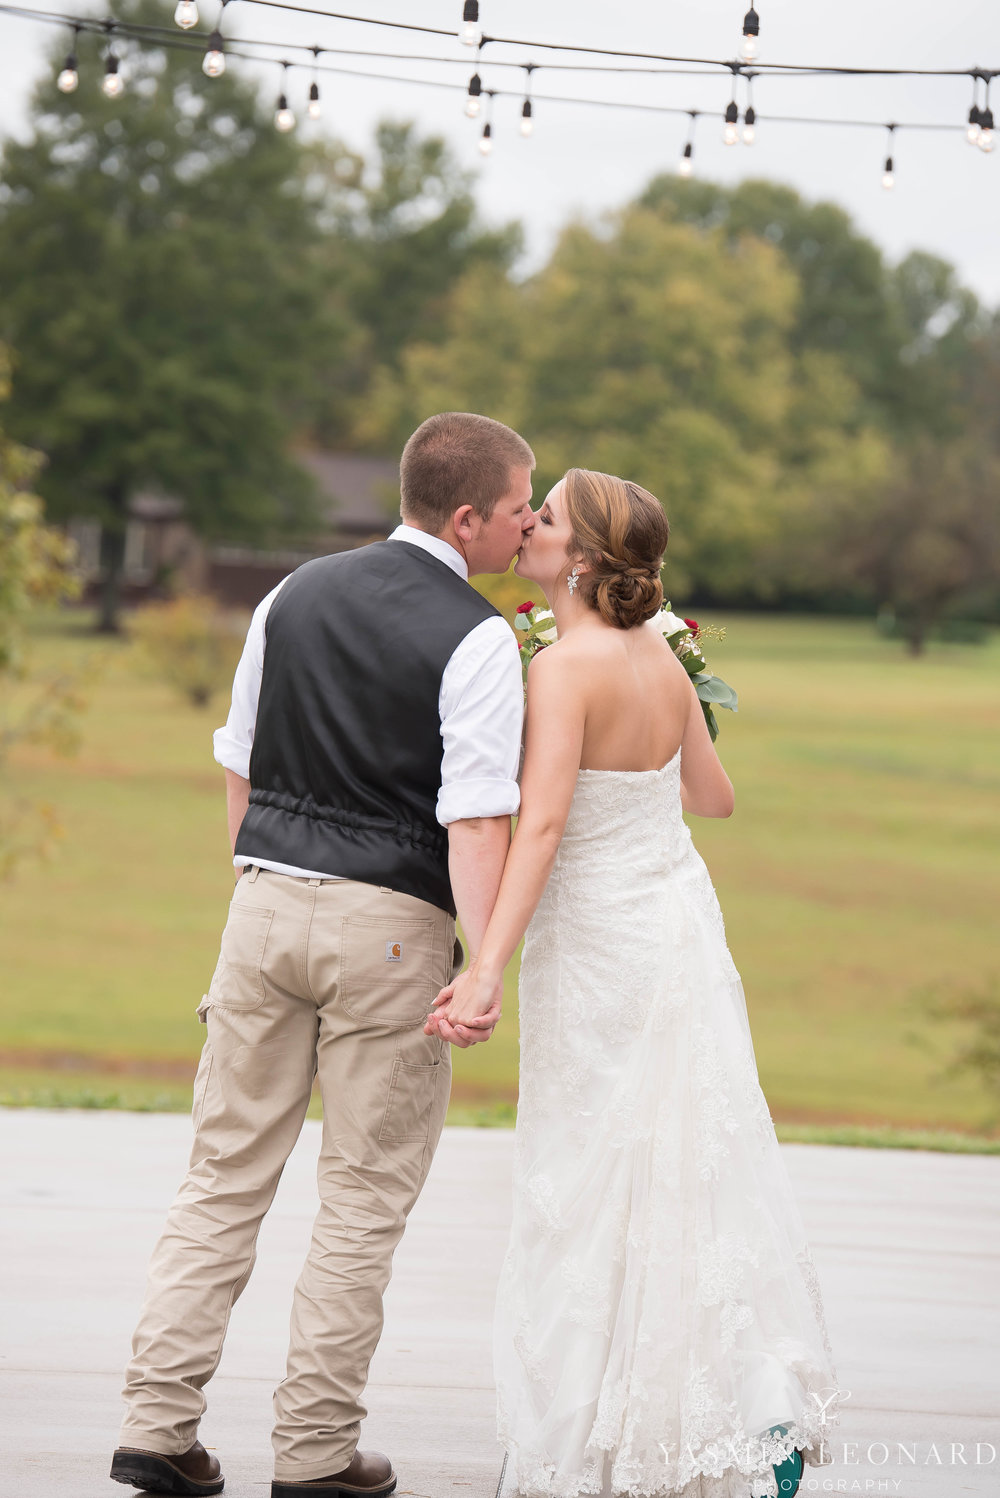 Millikan Farms - NC Wedding Venue - NC Wedding Photographer - Yasmin Leonard Photography - Rain on your wedding day-51.jpg